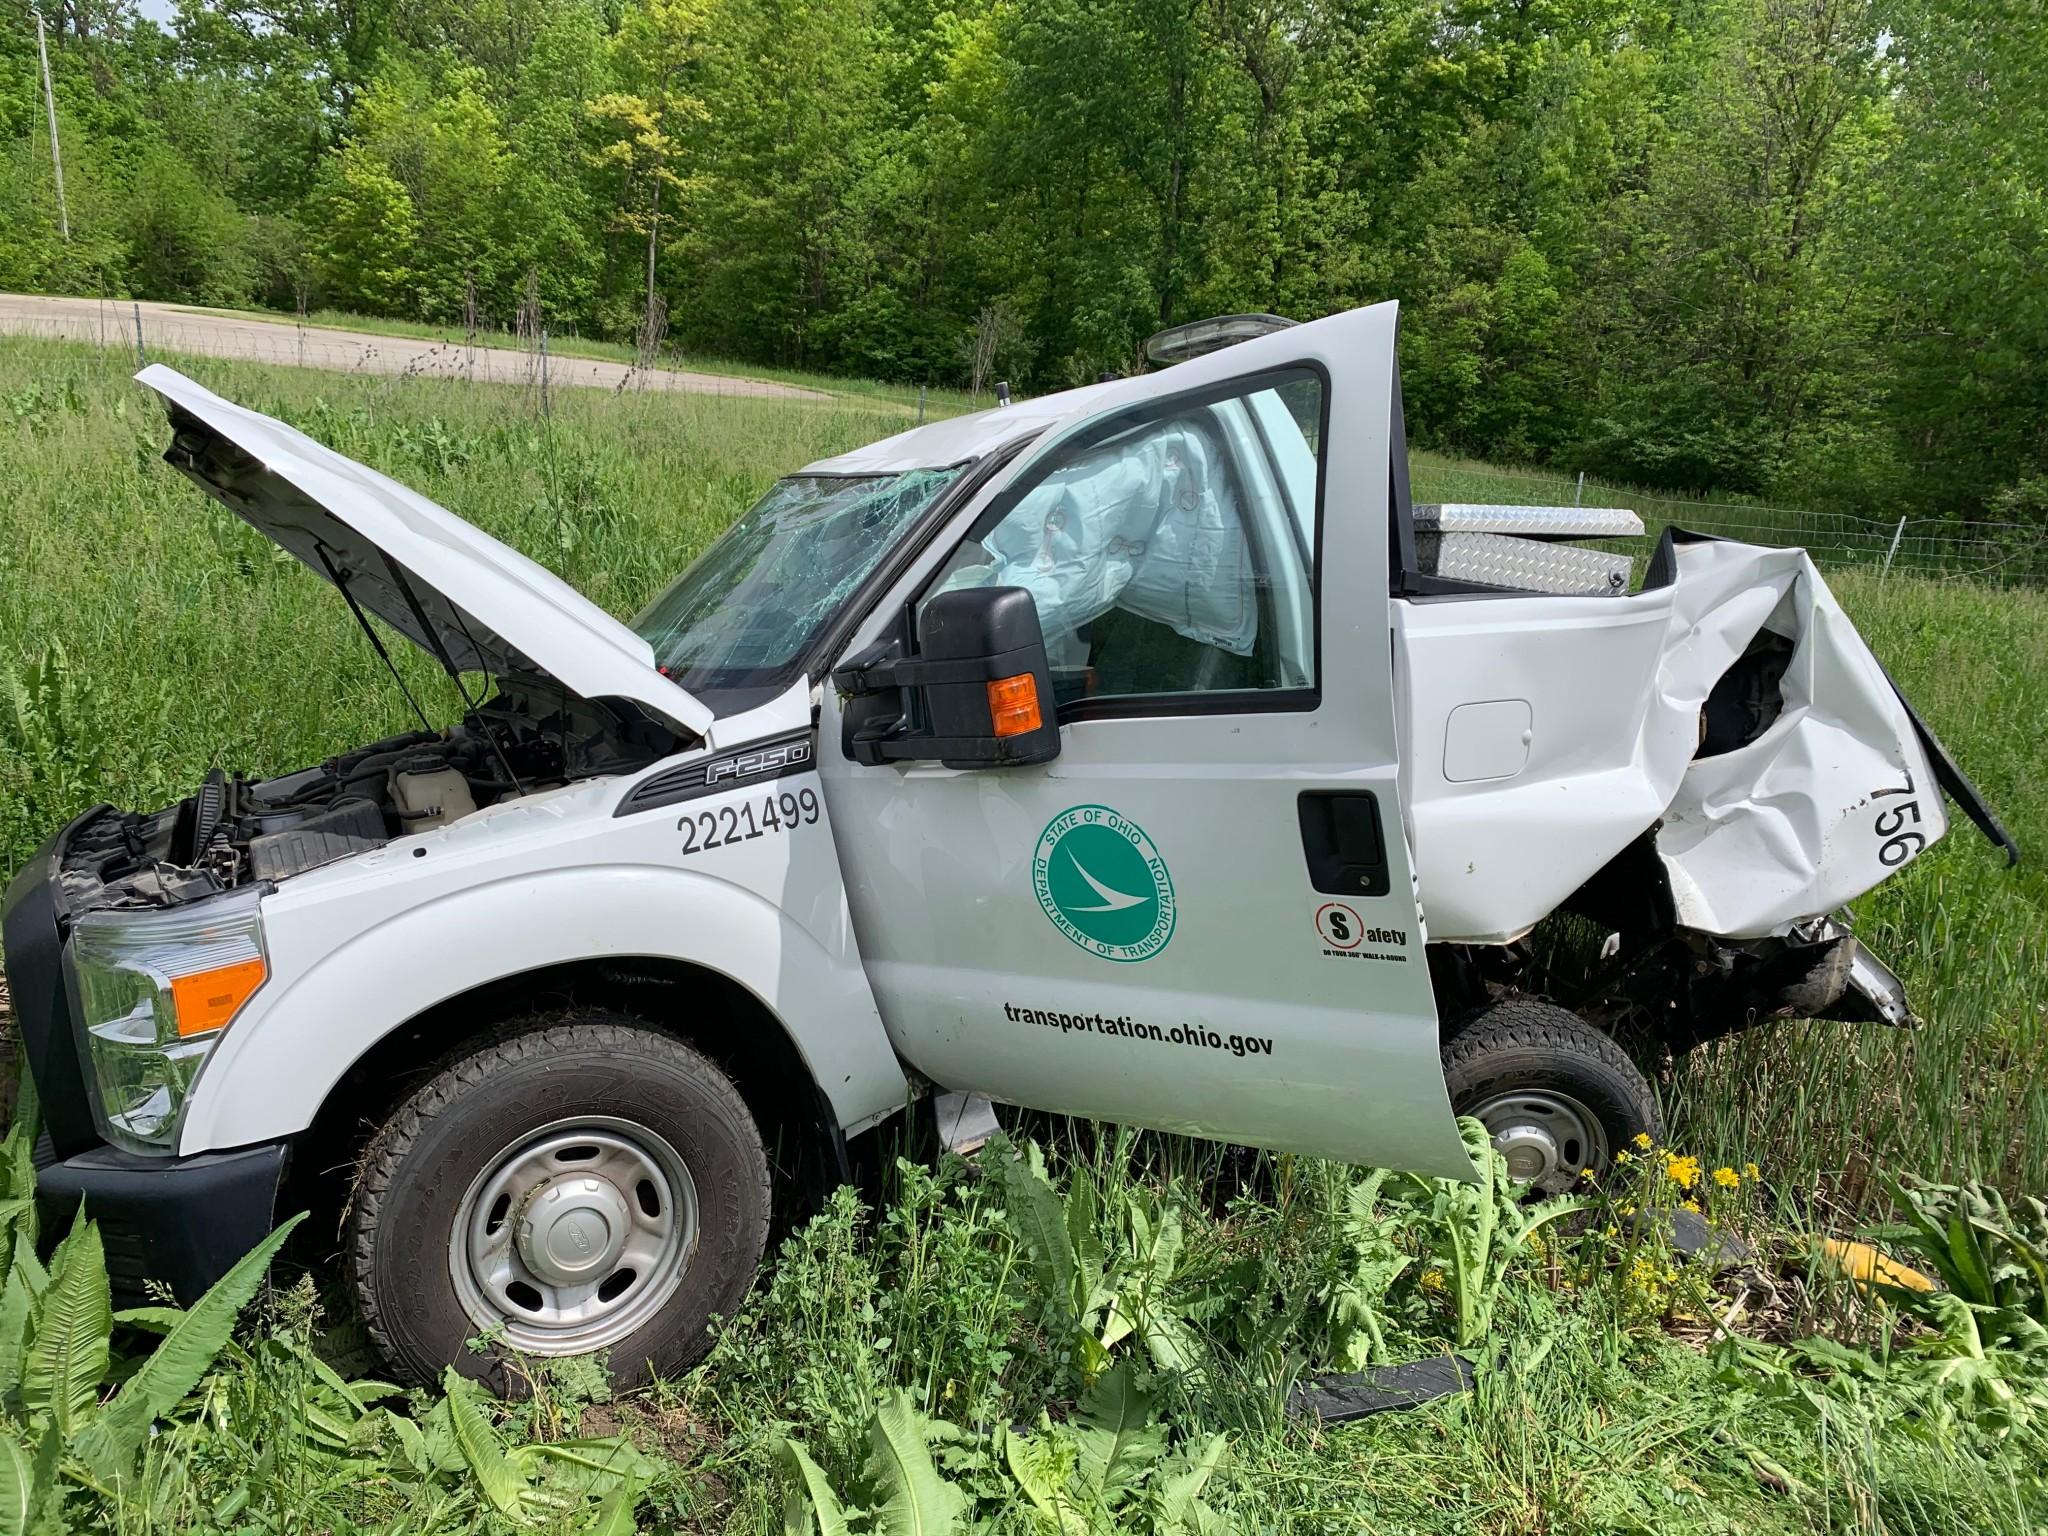 The Ohio Department of Transportation reminds motorists to move over and slow down for ODOT workers. On May 27, a semi slammed into the back of an ODOT truck in a work zone on U.S. 30 in Crawford County, injuring an ODOT worker. (ODOT photo)